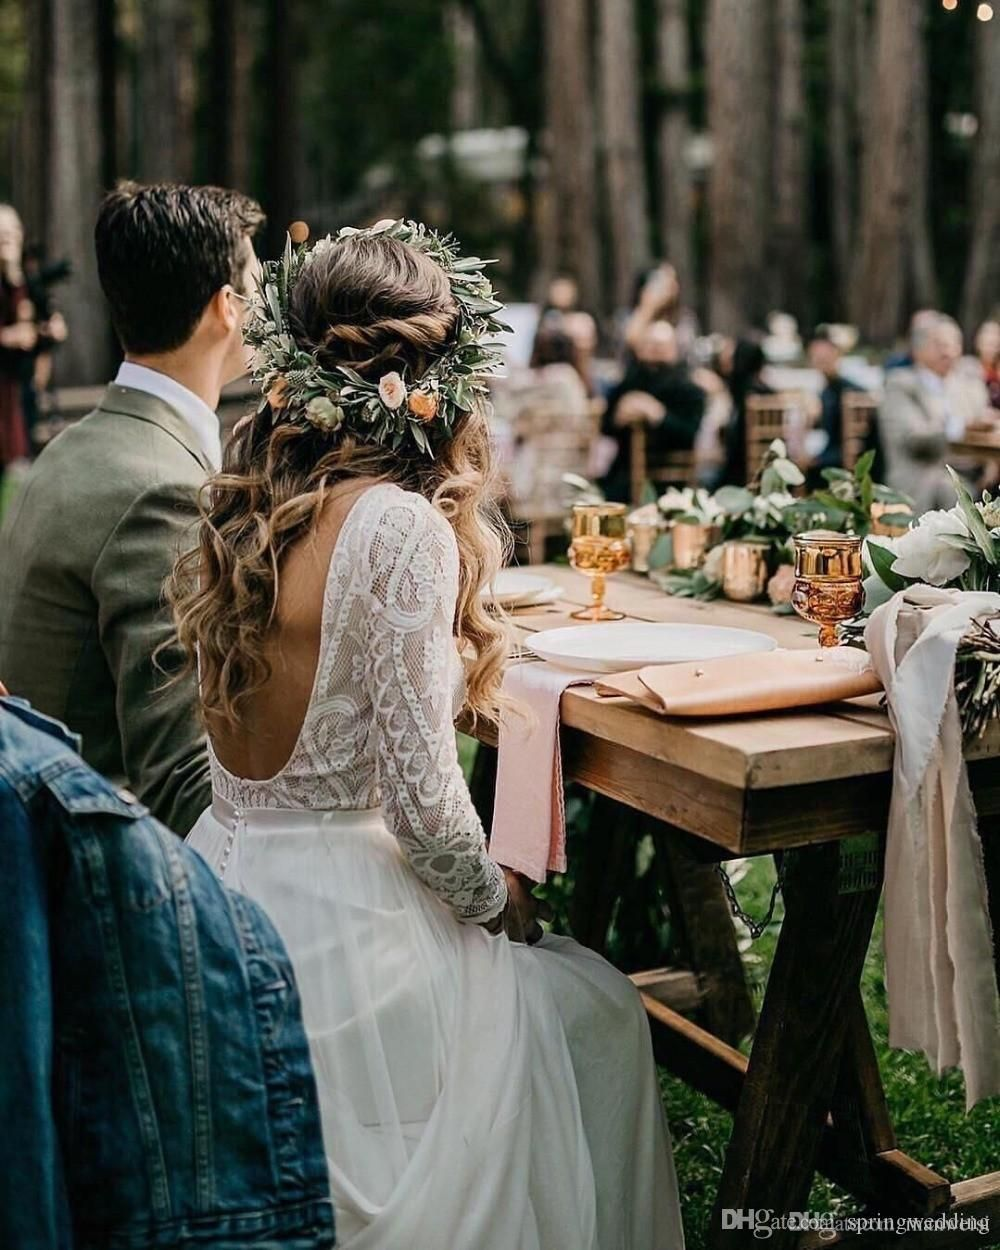 Discount Beach Bohemian Wedding Dresses Sexy Backless Long Sleeve Country Boho Bridal Gowns 2019 Custom Made Wedding Dress A Line Wedding Dresses With Lace Best Designer Wedding Dresses From Springwedding, $183.92| DHgate.Com -   15 wedding Boho hippie ideas